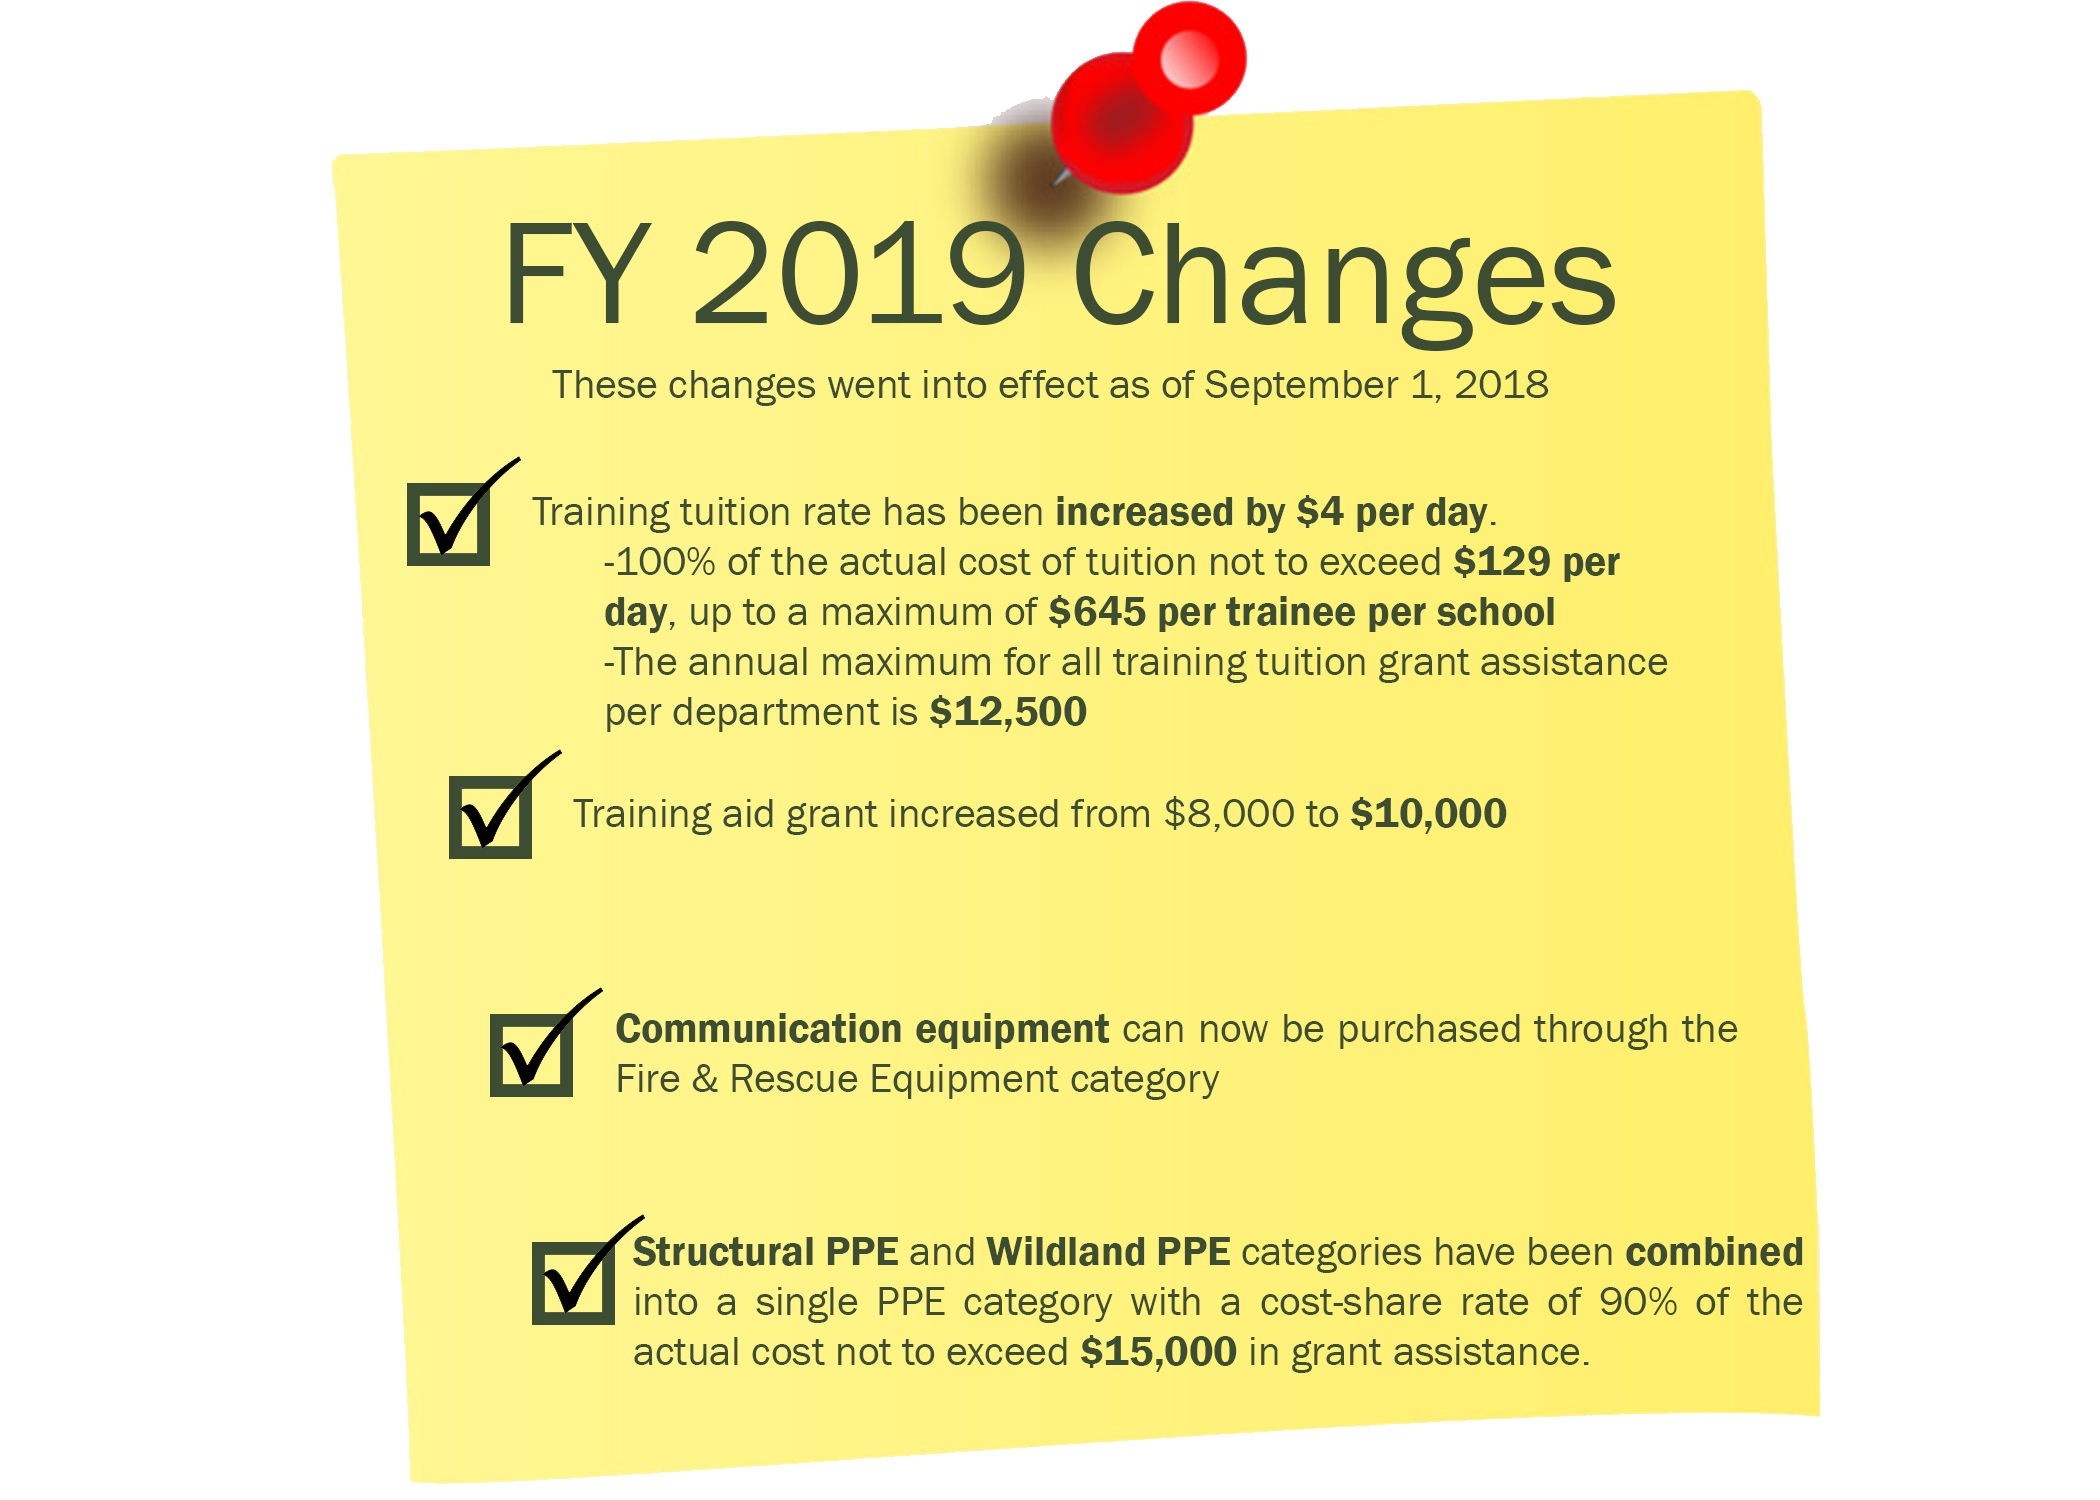 FY19 Changes